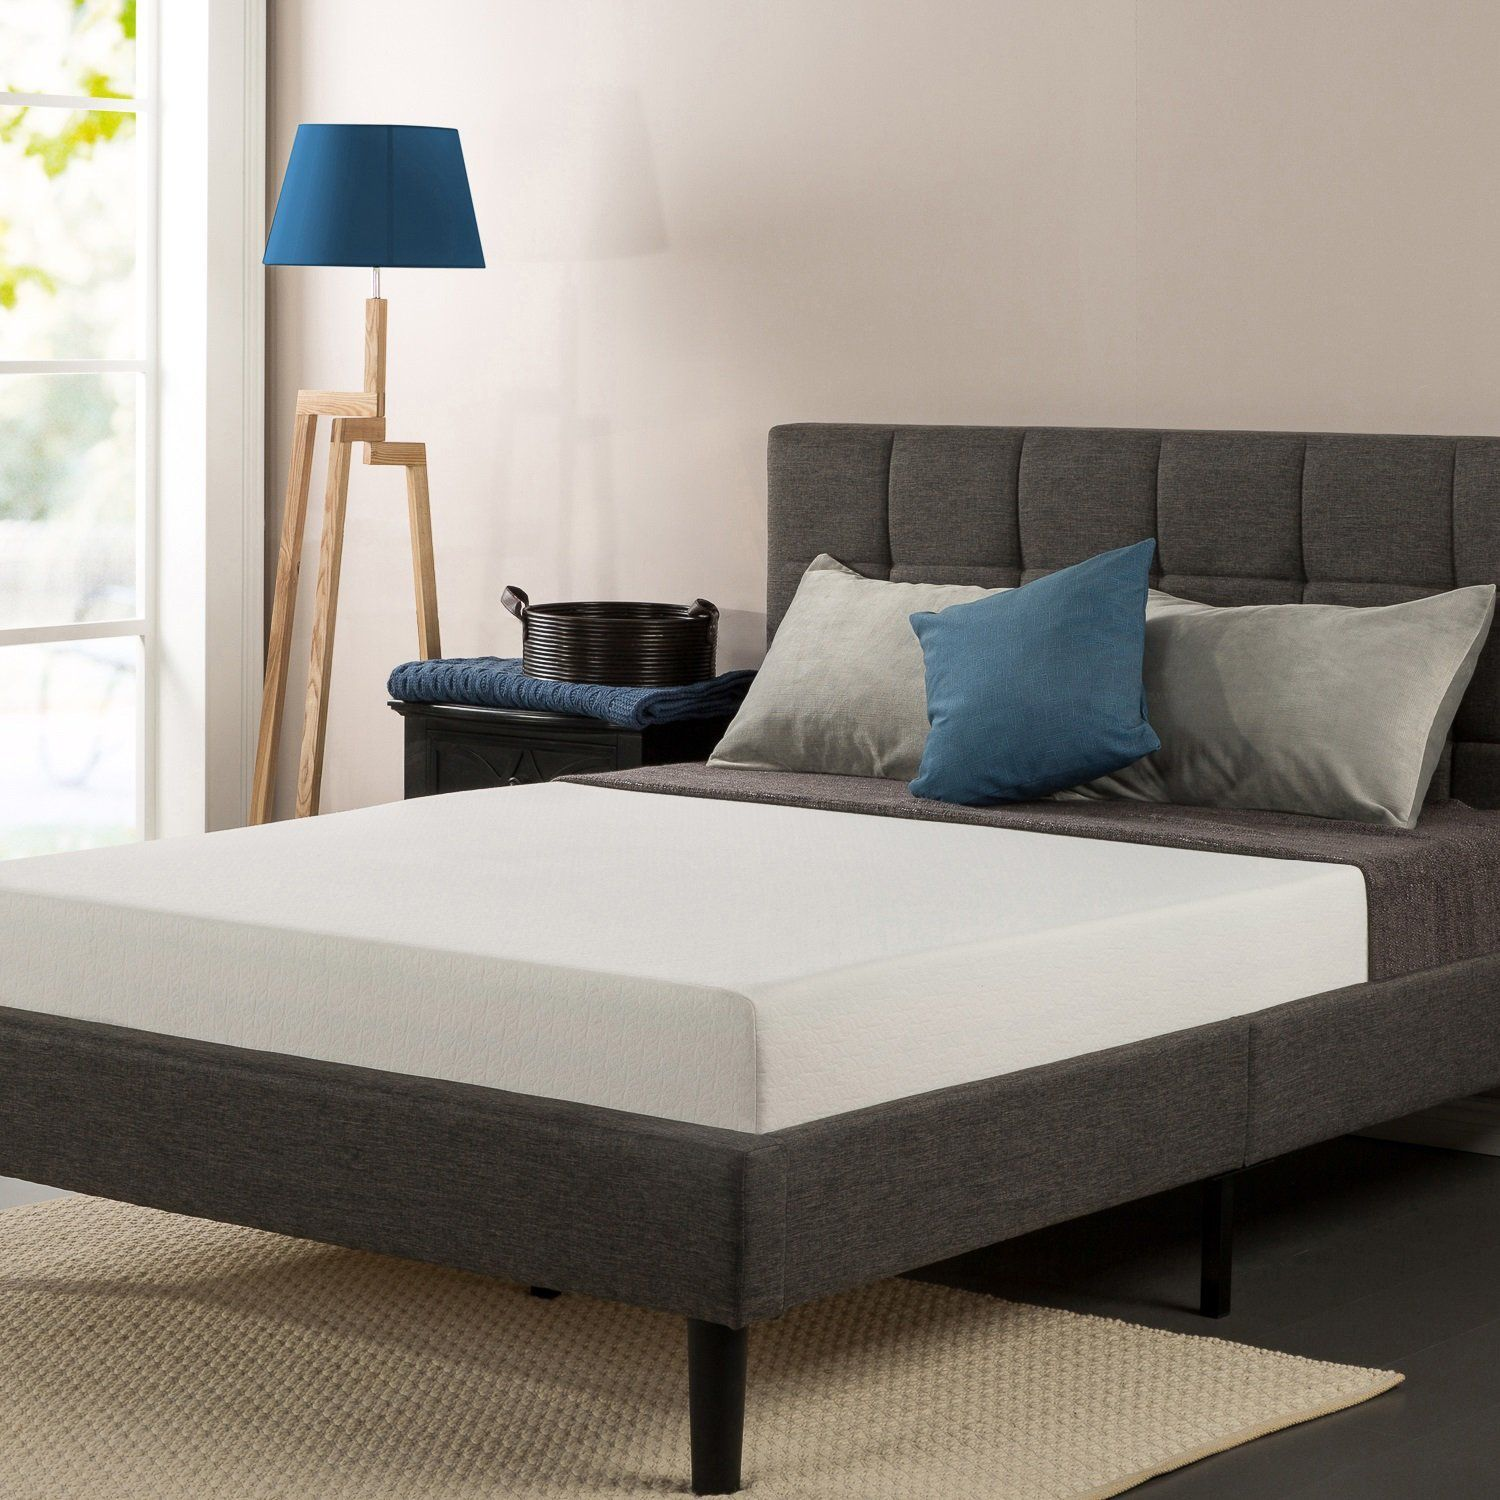 The 7 Best King Mattresses To Buy In 2018